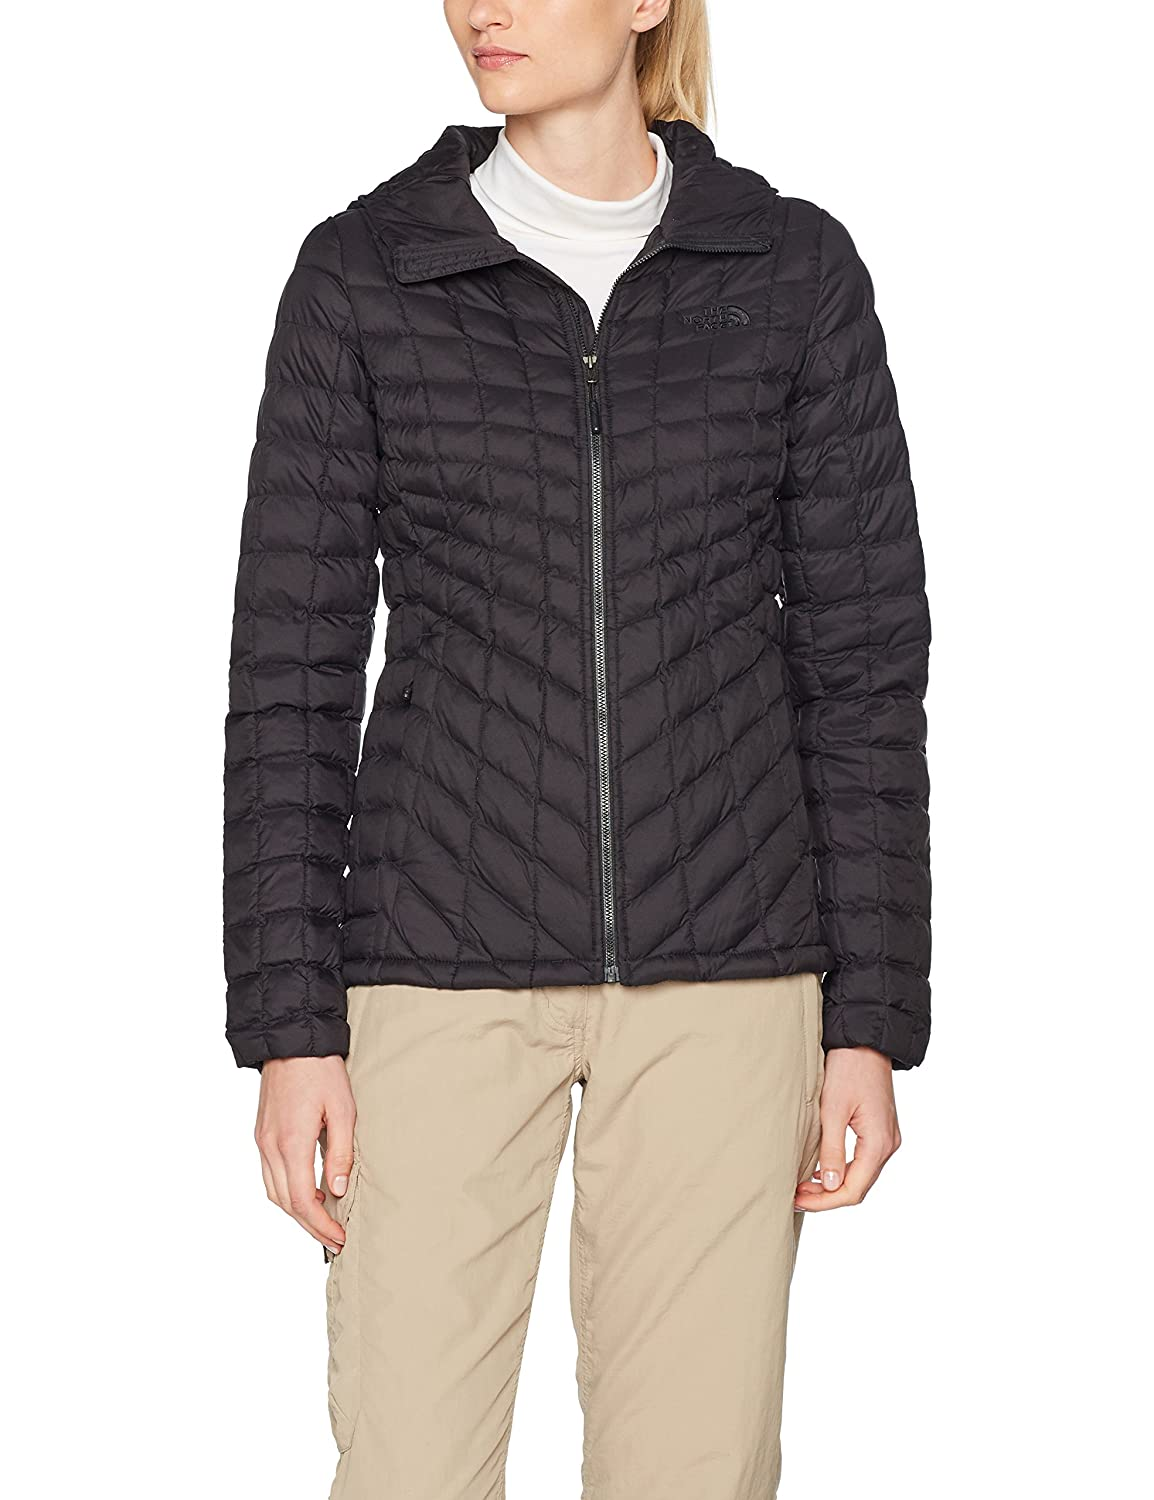 (Small, Tnf Black Matte) - The North Face Women's Thermoball Hoodie Jacket B071711ZYD